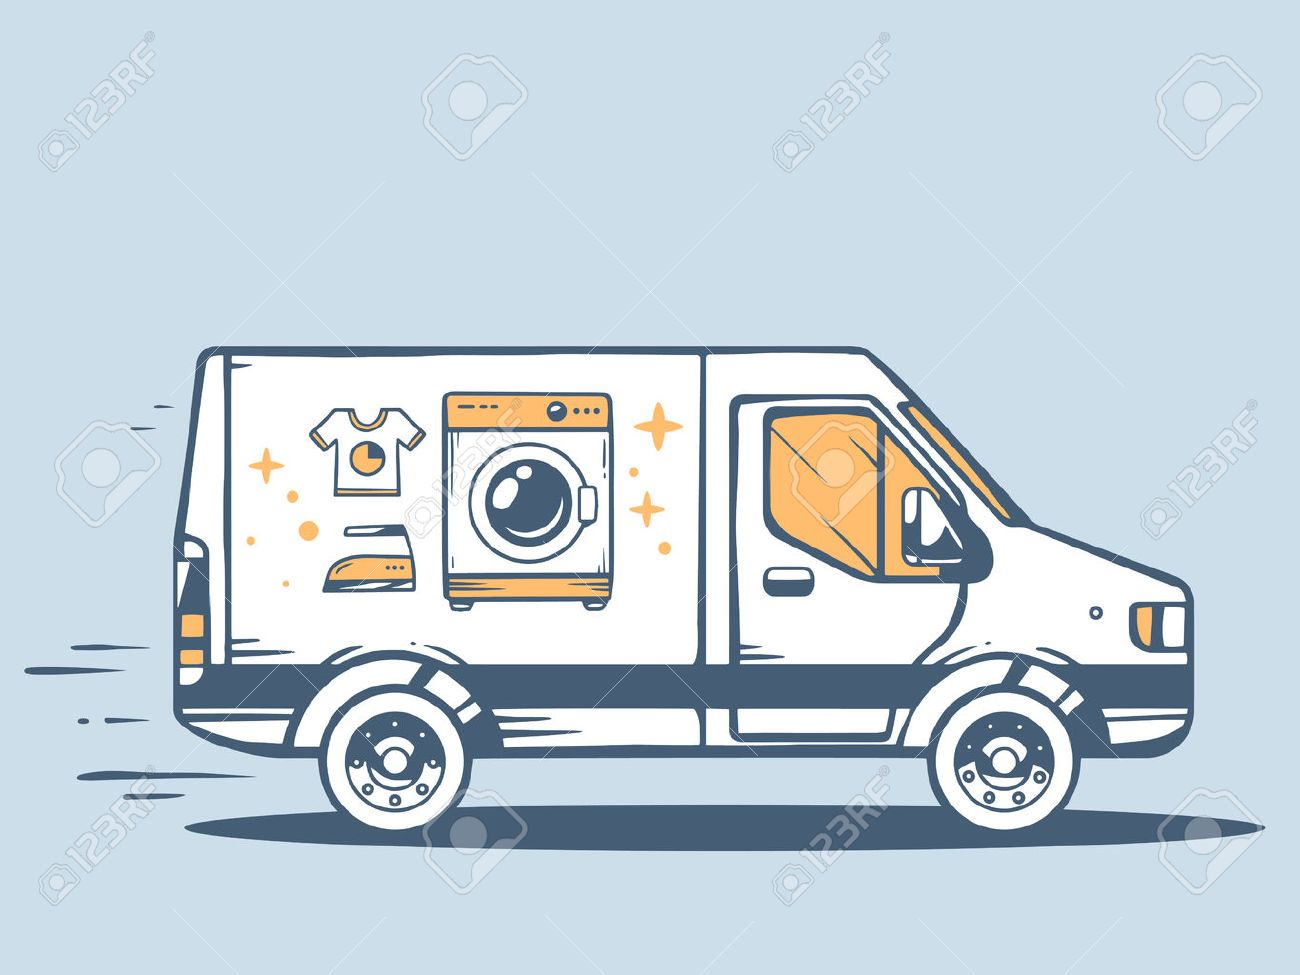 Vector illustration of van free and fast delivering washing machine to customer on blue background. Line art design for web, site, advertising, banner, poster, board and print. - 33612374